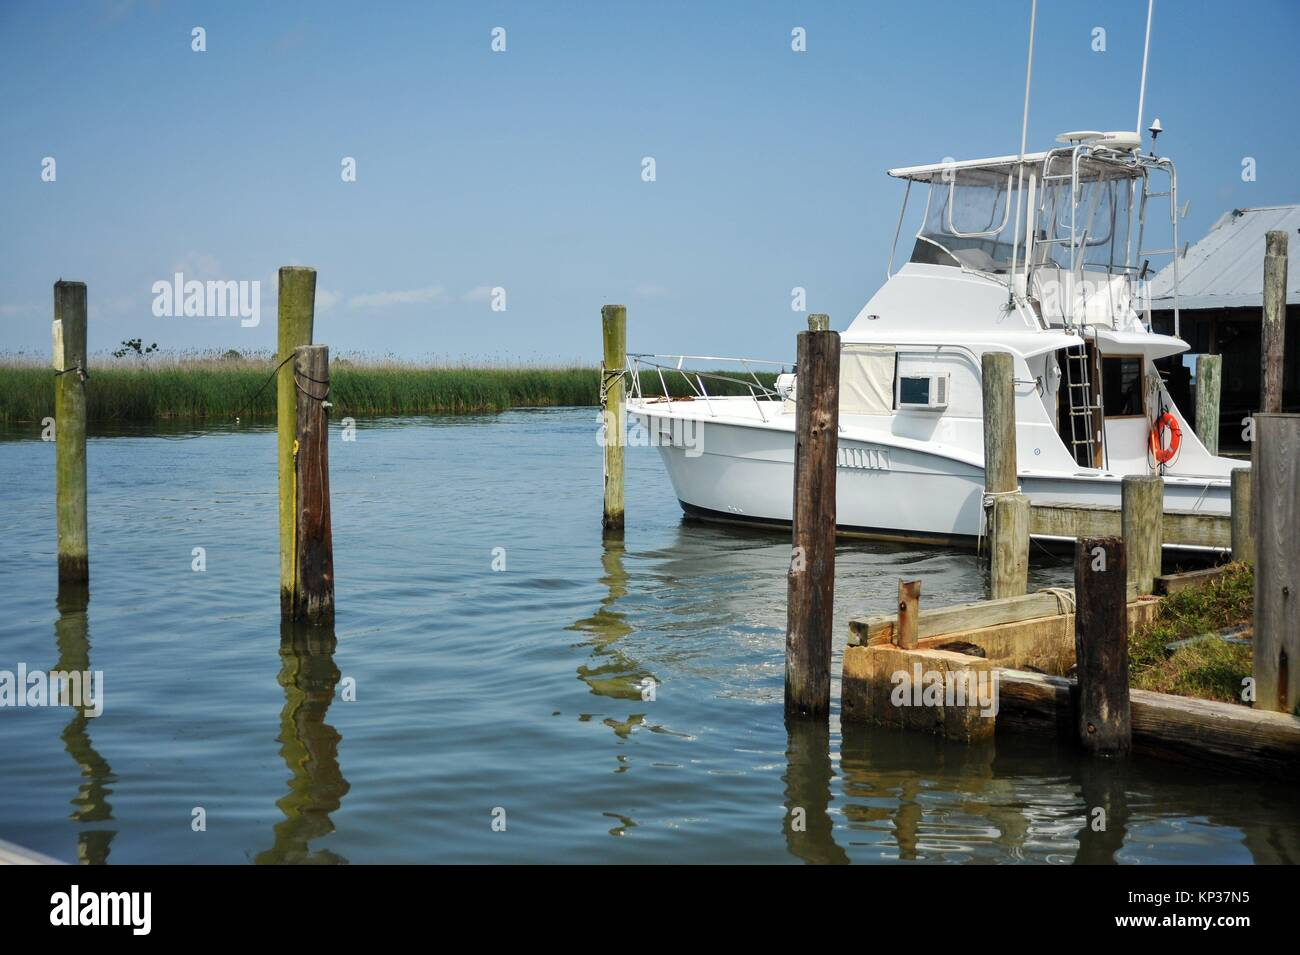 Apalachicola, Florida, Water Street Marina with boat at pier. - Stock Image